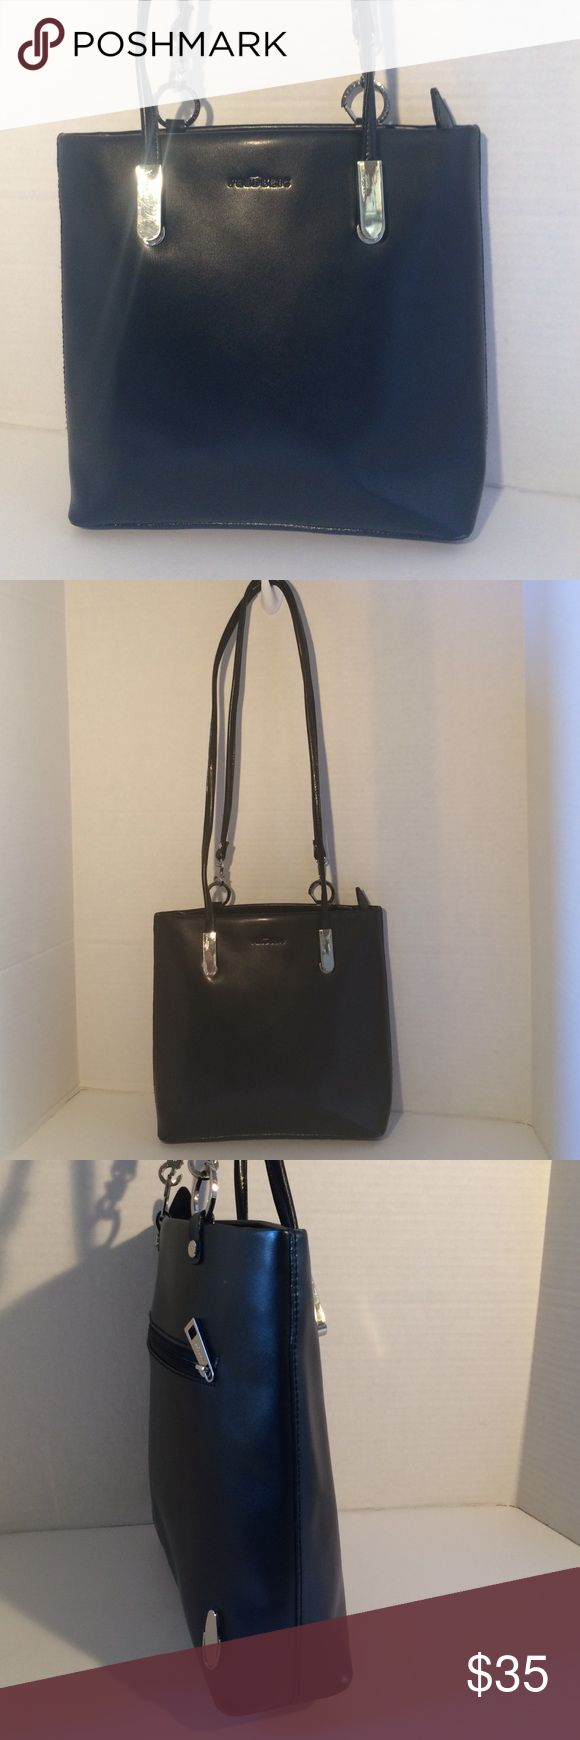 "Frederic T Paris Stunning Leather Handbag Stunning in excellent condition like new/ very clean inside/ double straps/ 1 zip outside pocket/ zip closure/ inside side zip pocket/ inside 2 side pockets / length 11""/ height 10"""" depth 3""/ straps 35""/ No Flaws! Frederic T Paris Bags Shoulder Bags"